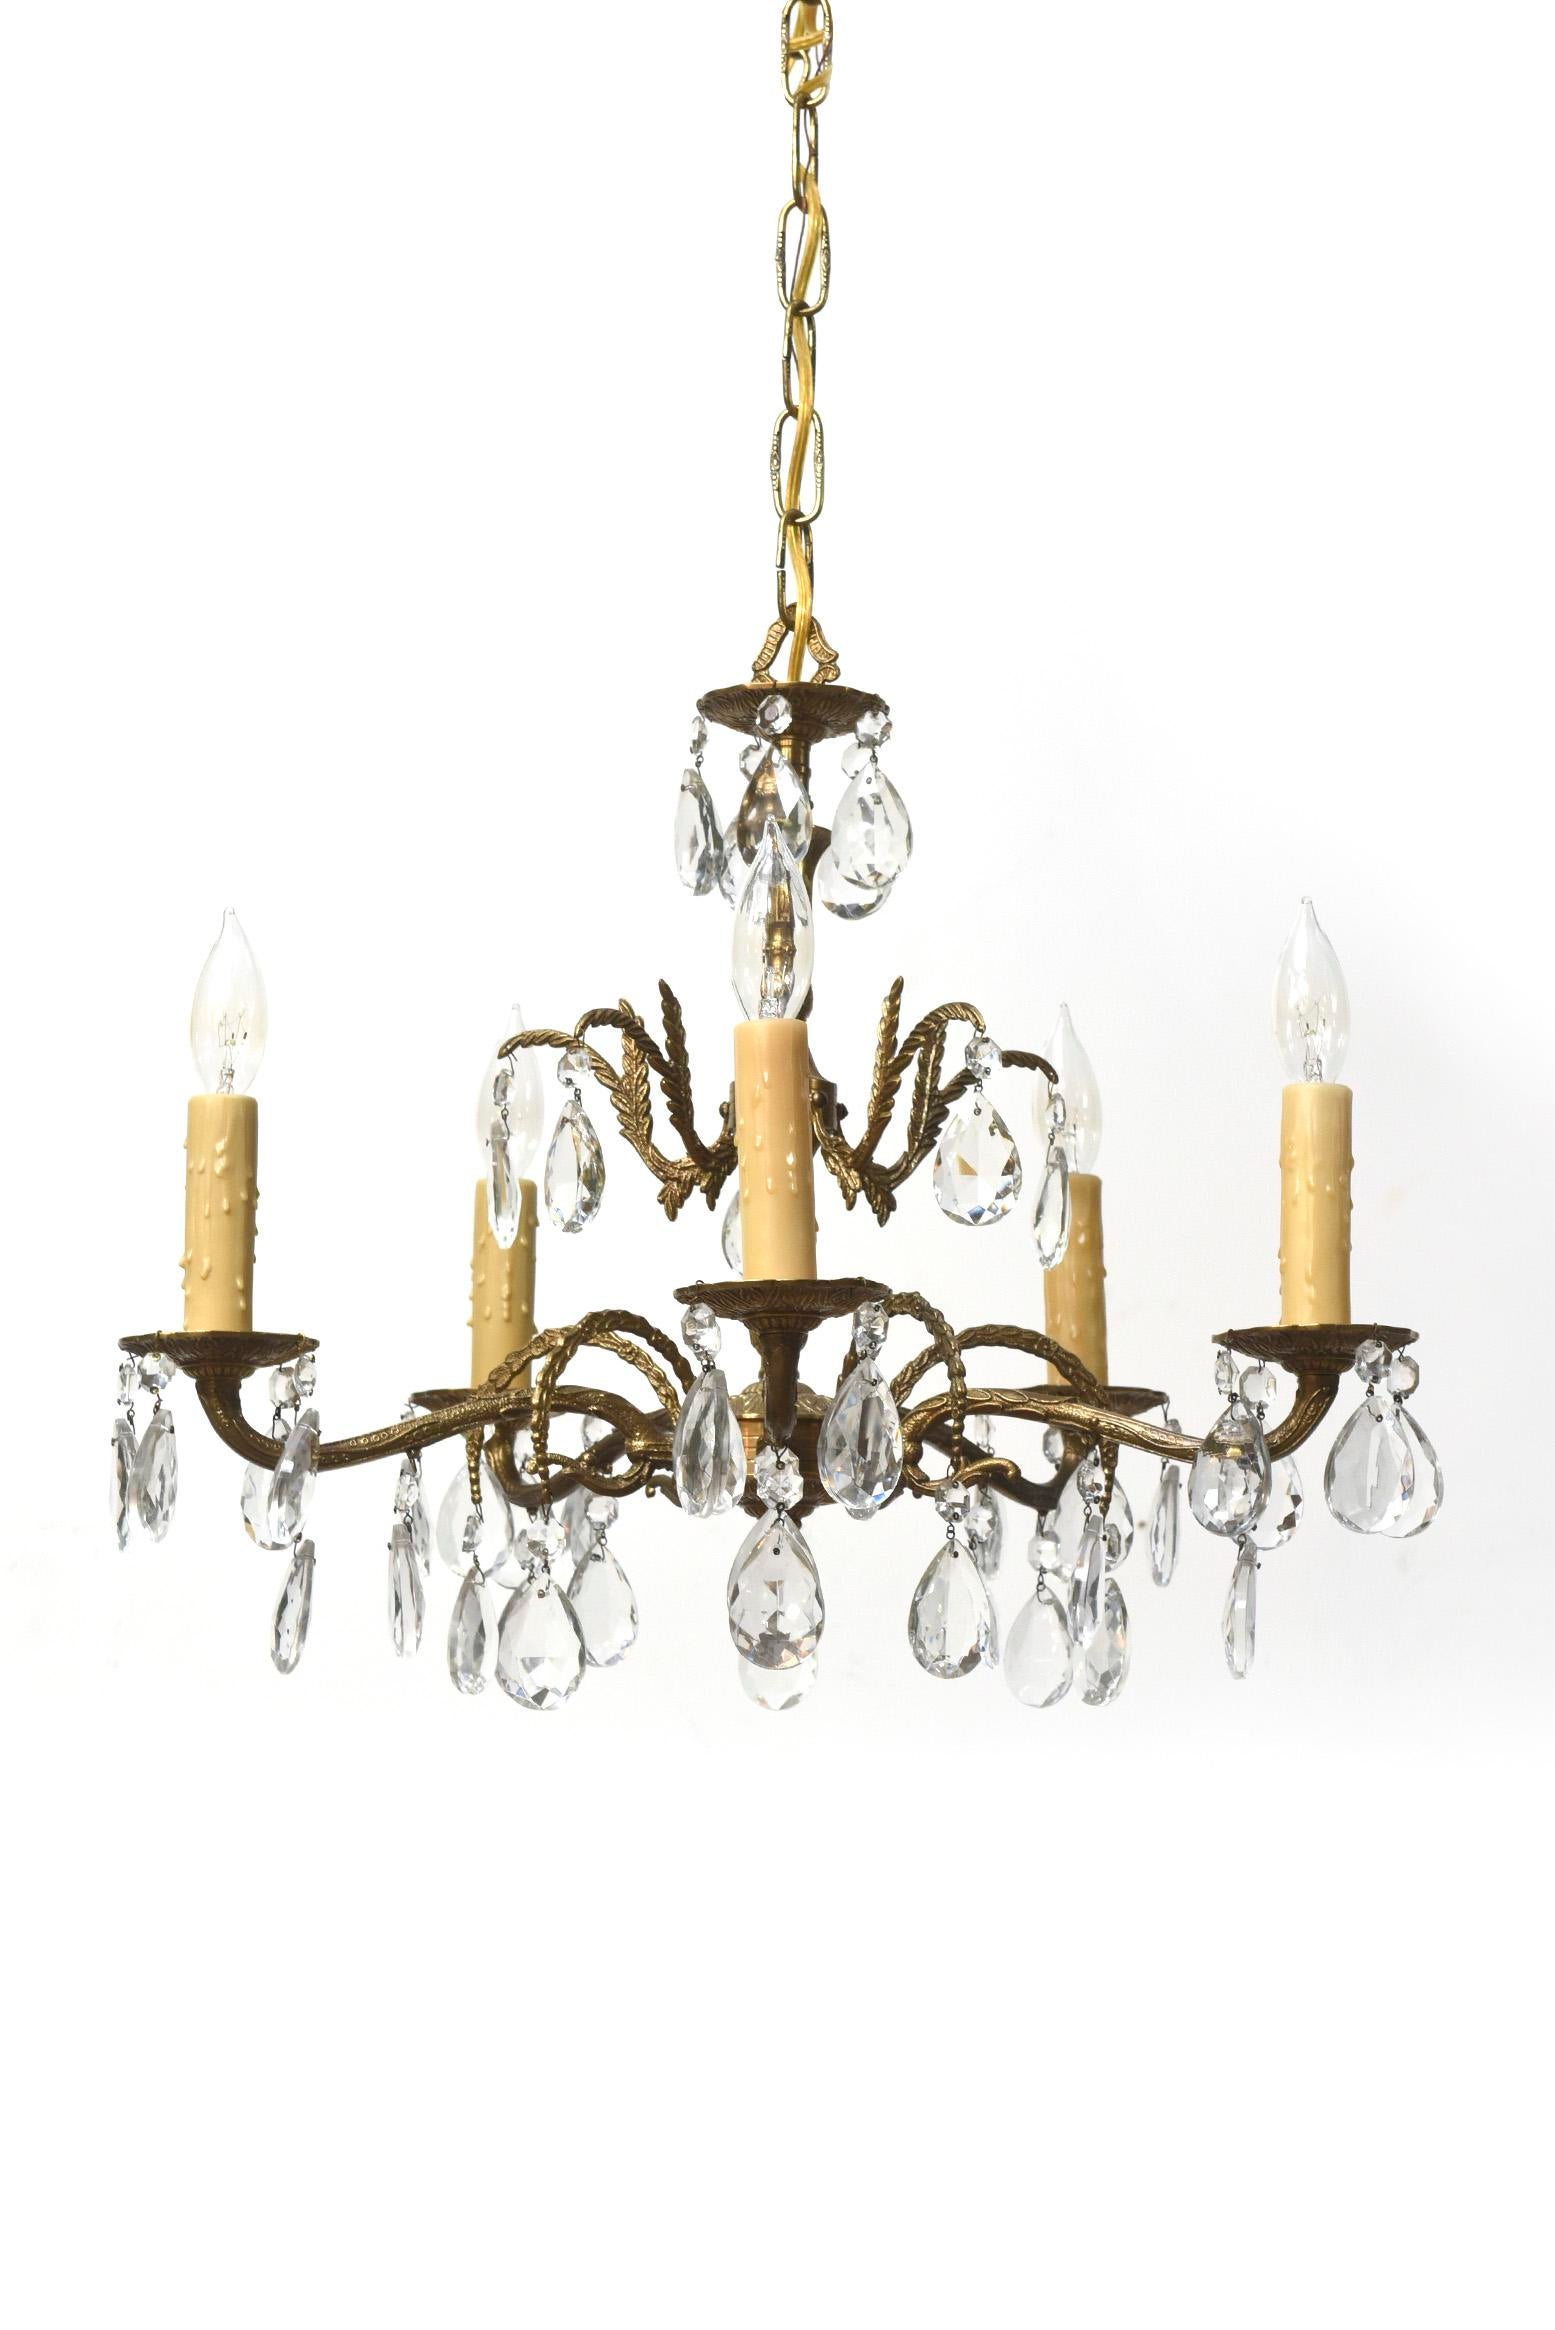 Five light spanish brass and crystal chandelier image 2 of 5